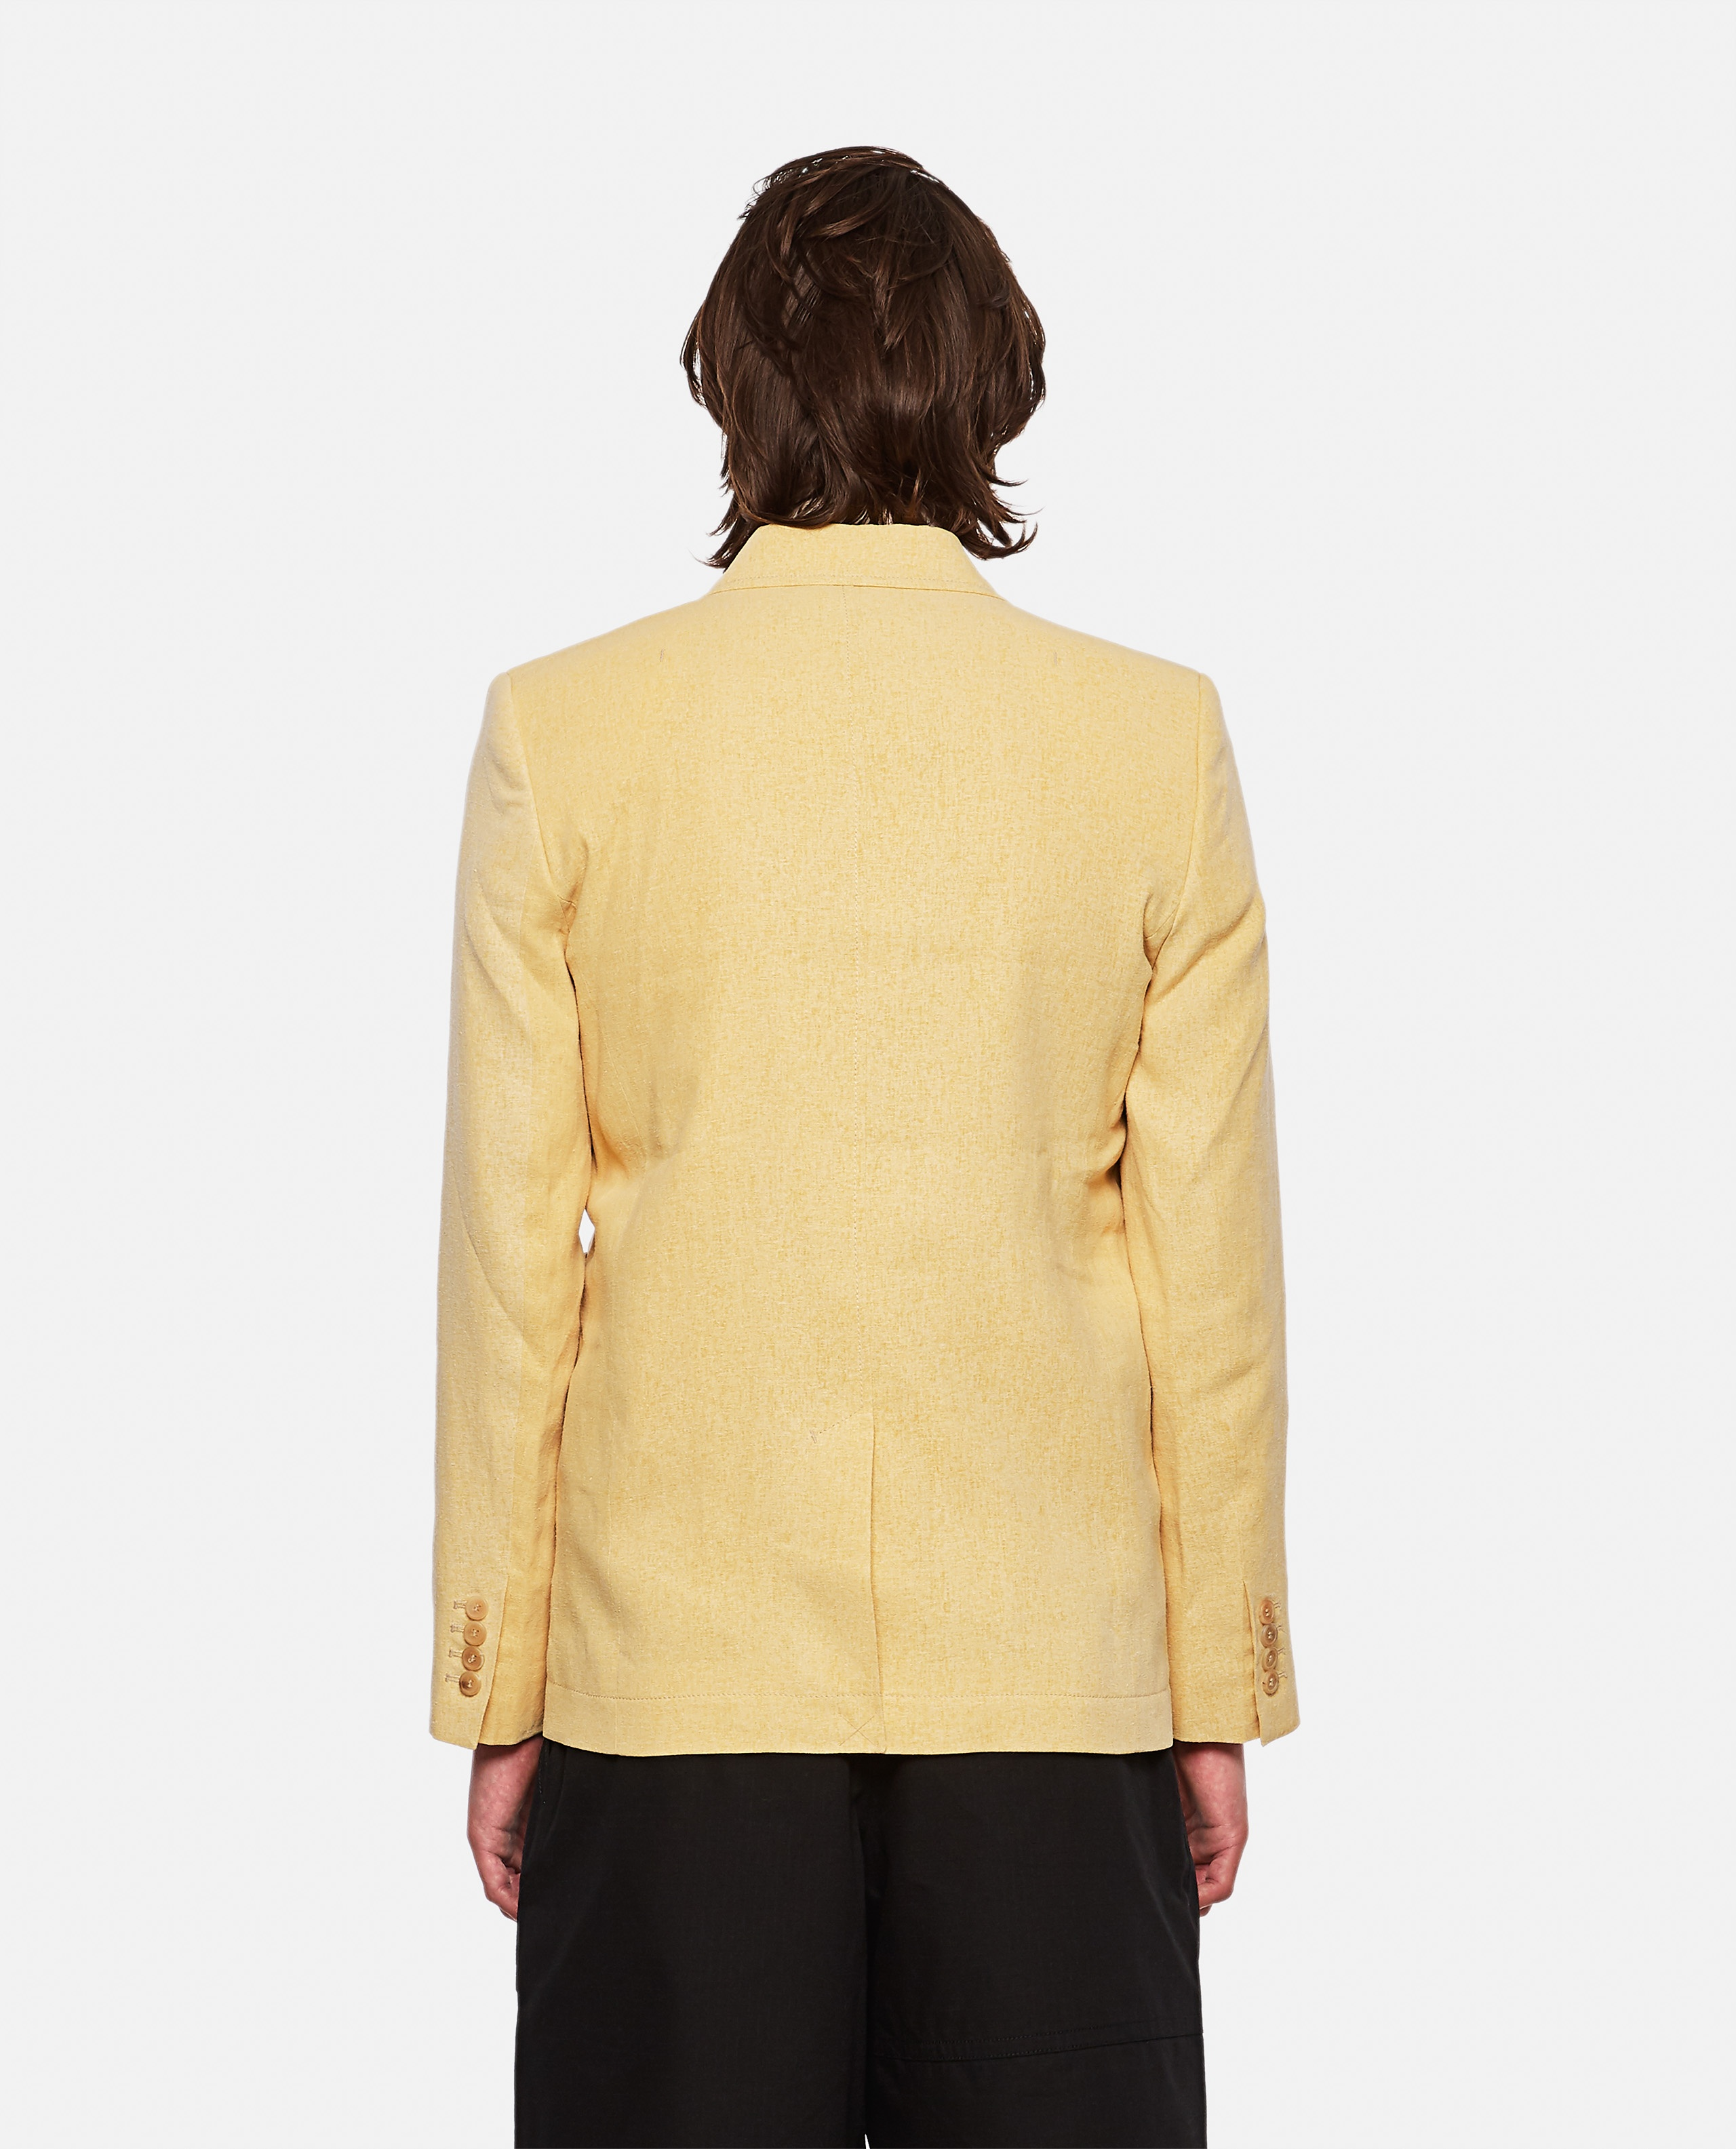 Linen blend jacket The Moulin dress Men Jacquemus 000293620043232 3